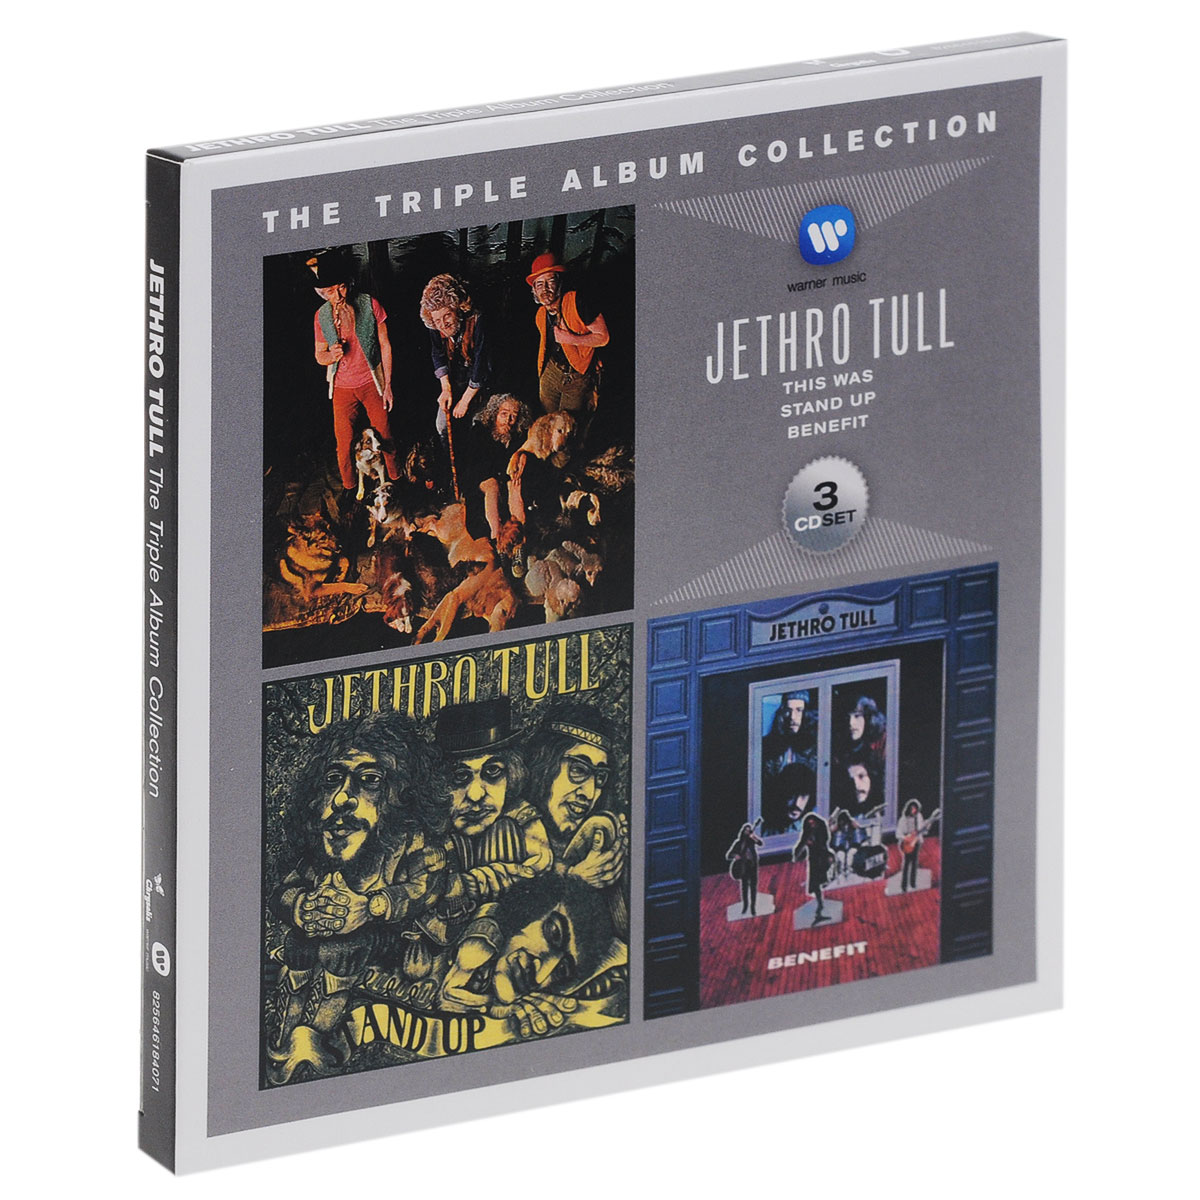 Jethro Tull Jethro Tull. The Triple Album Collection (3 CD) jethro tull jethro tull the triple album collection 3 cd